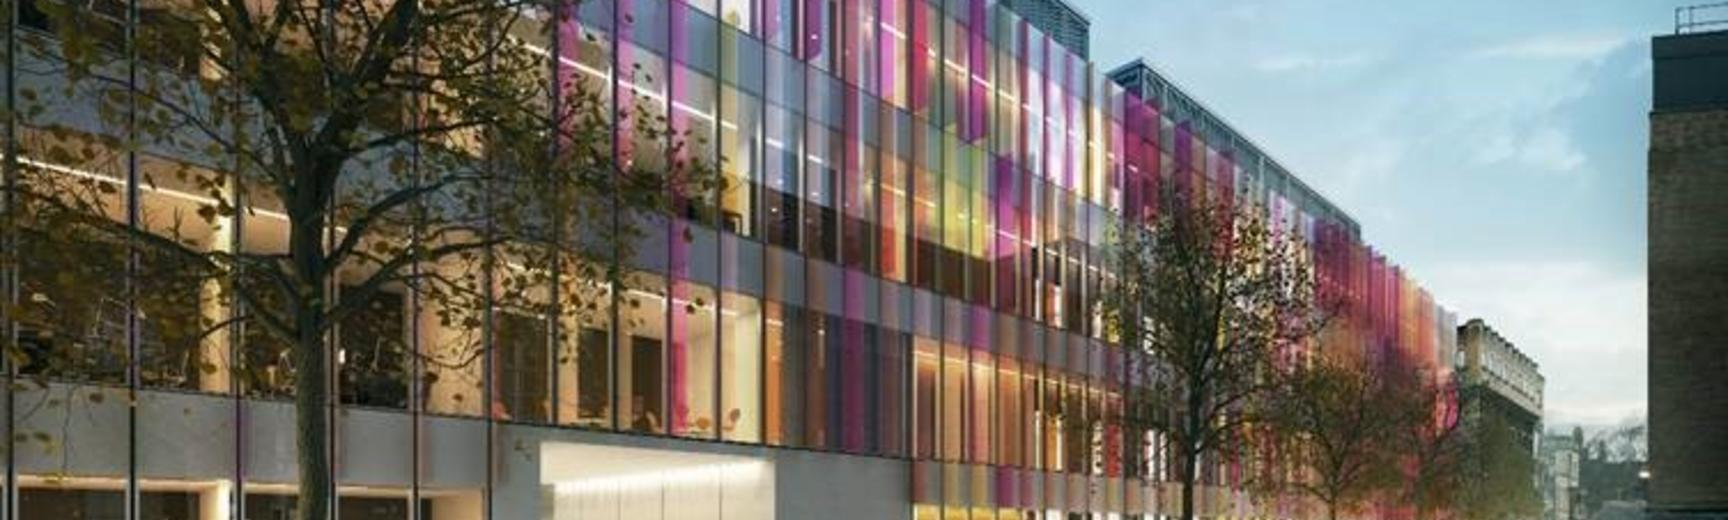 Artist's impression of the University's new Biochemistry building, currently under construction